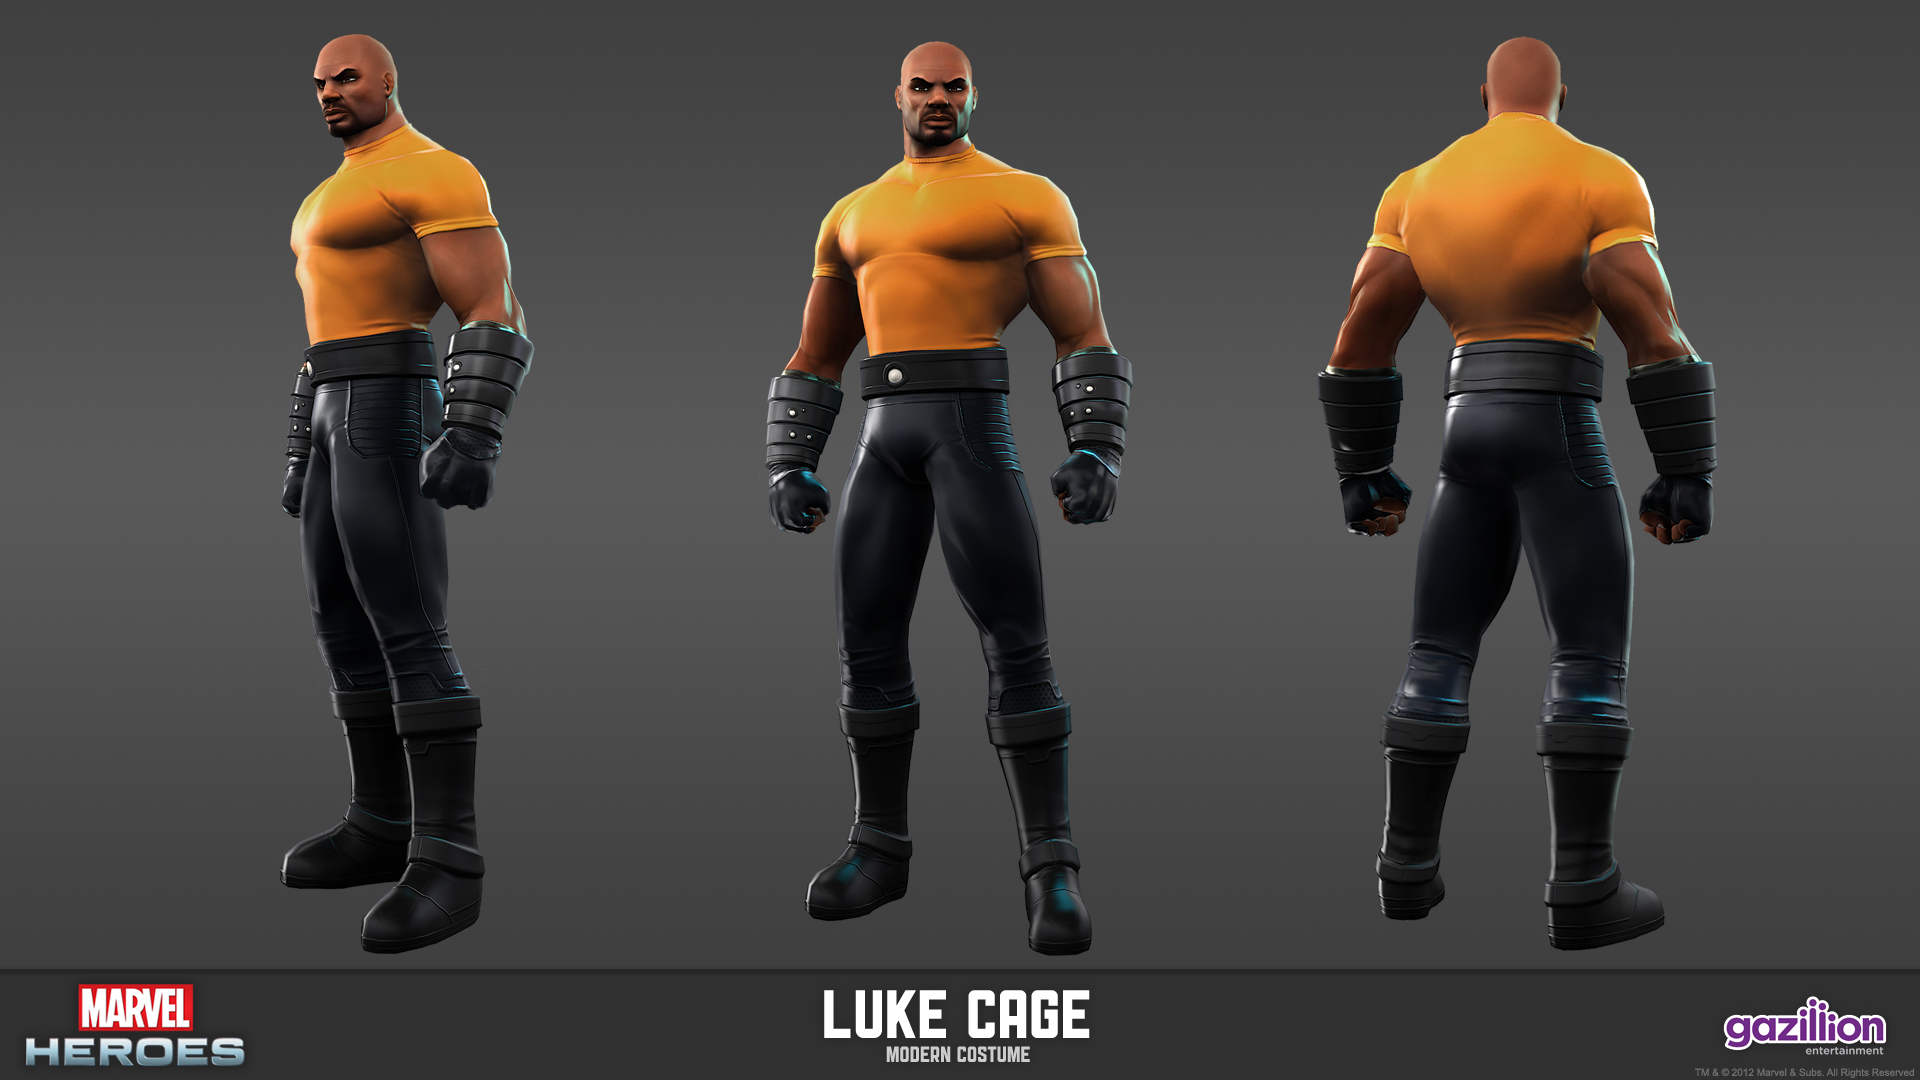 Top Wallpaper Marvel Luke Cage - latest?cb\u003d20121016142955  Perfect Image Reference_97214.jpg/revision/latest?cb\u003d20121016142955